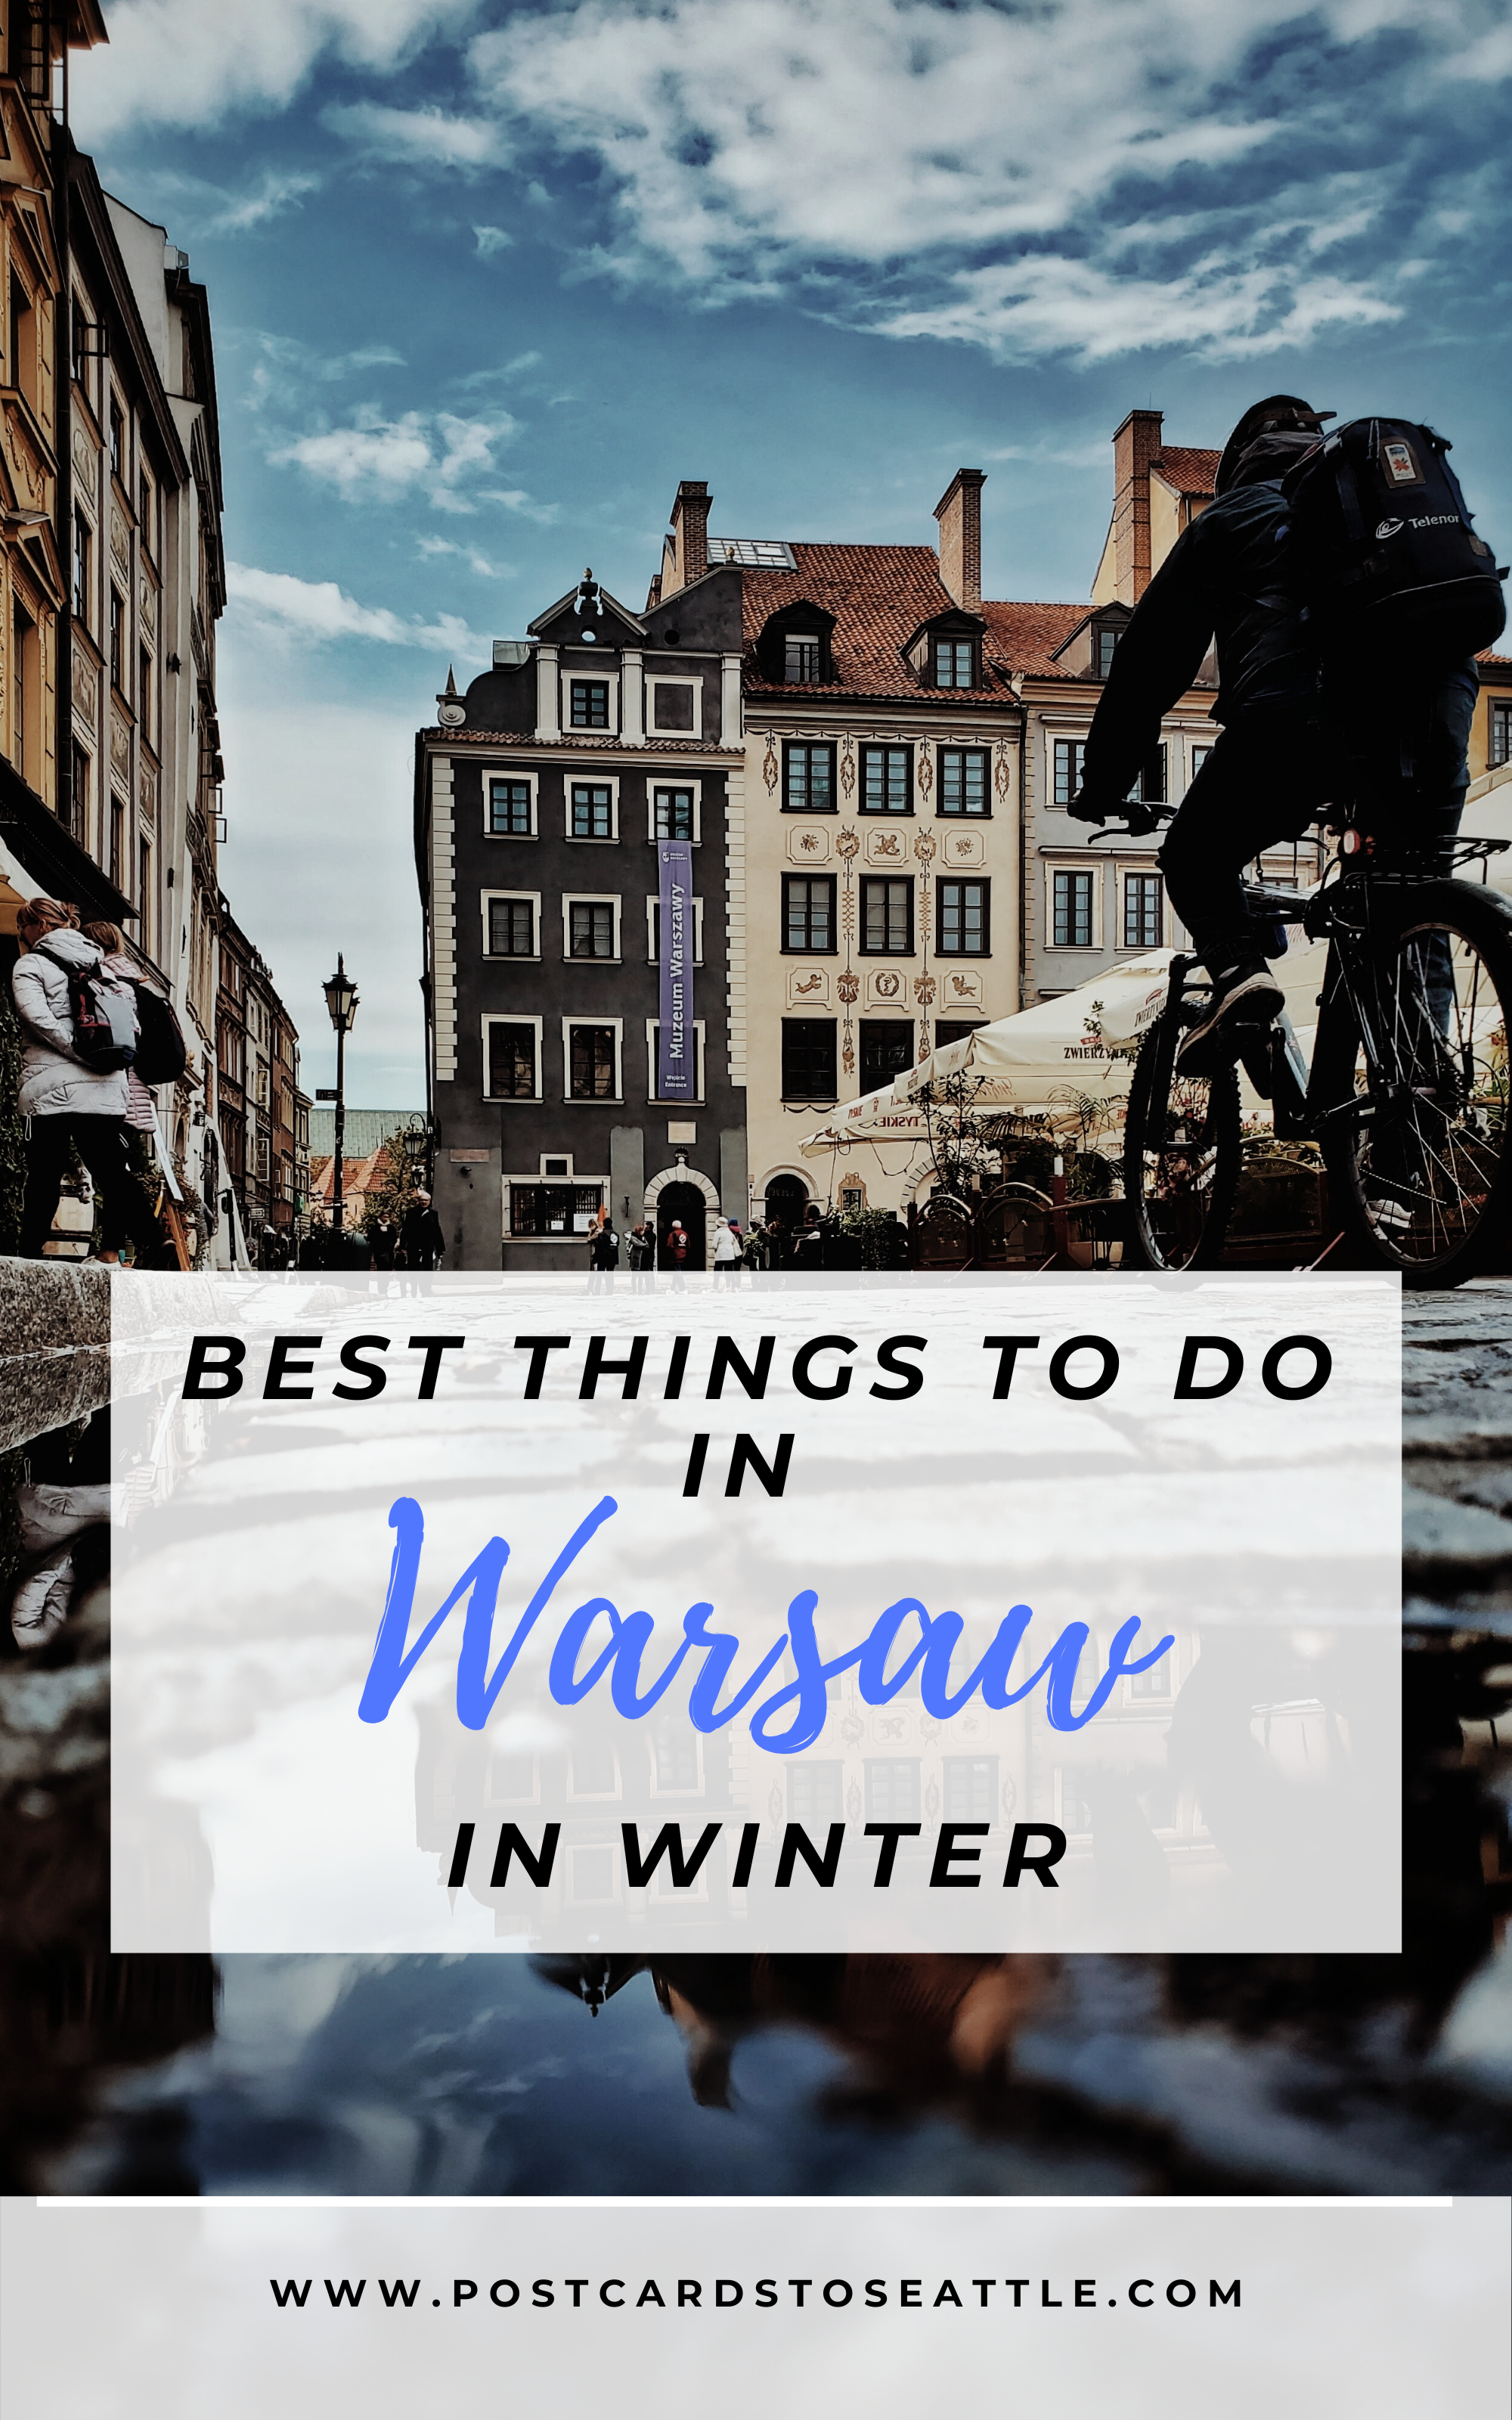 Headed to Warsaw in winter for your next trip? Here are 15 fun things to do in the winter in Warsaw that will keep you entertained and warm. #warsaw #wintervacation #europevacation #wintertrip #traveltips #poland #polandtrip